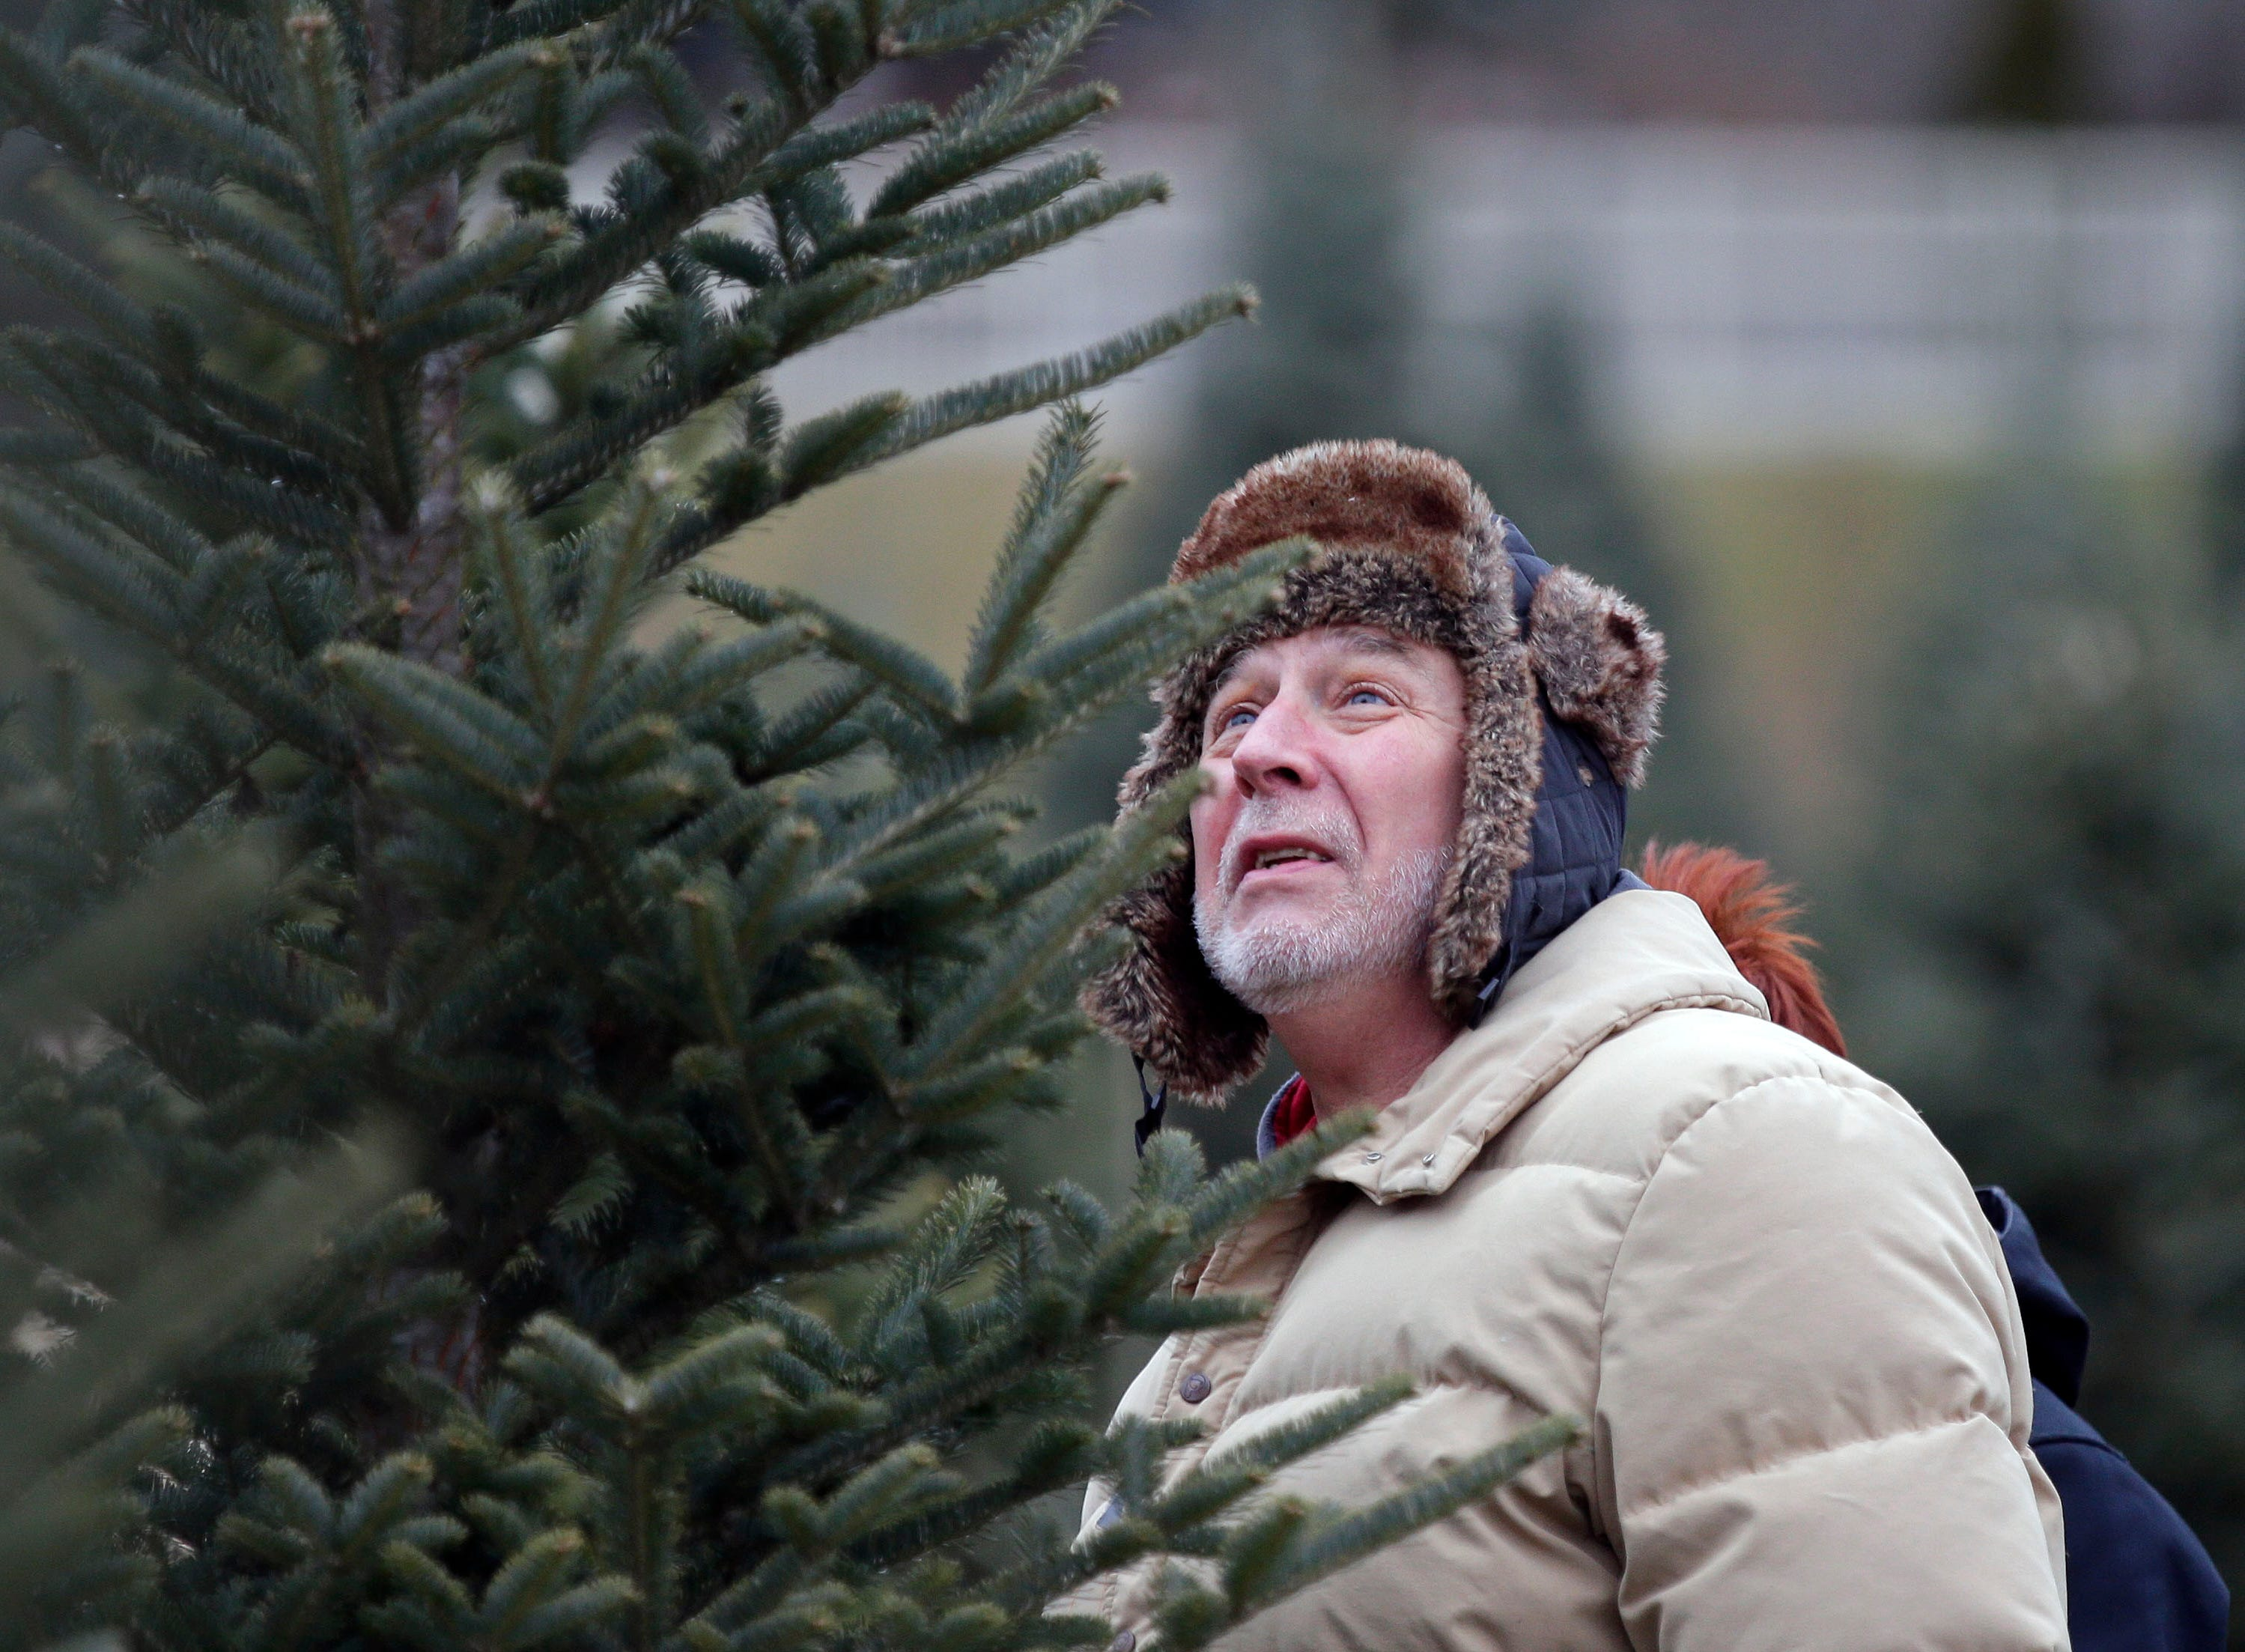 Mike Schommer of Appleton studies a potential Christmas tree Sunday, November 25, 2018, at the Mosquito Hill Tree Farm in New London, Wis.Ron Page/USA TODAY NETWORK-Wisconsin